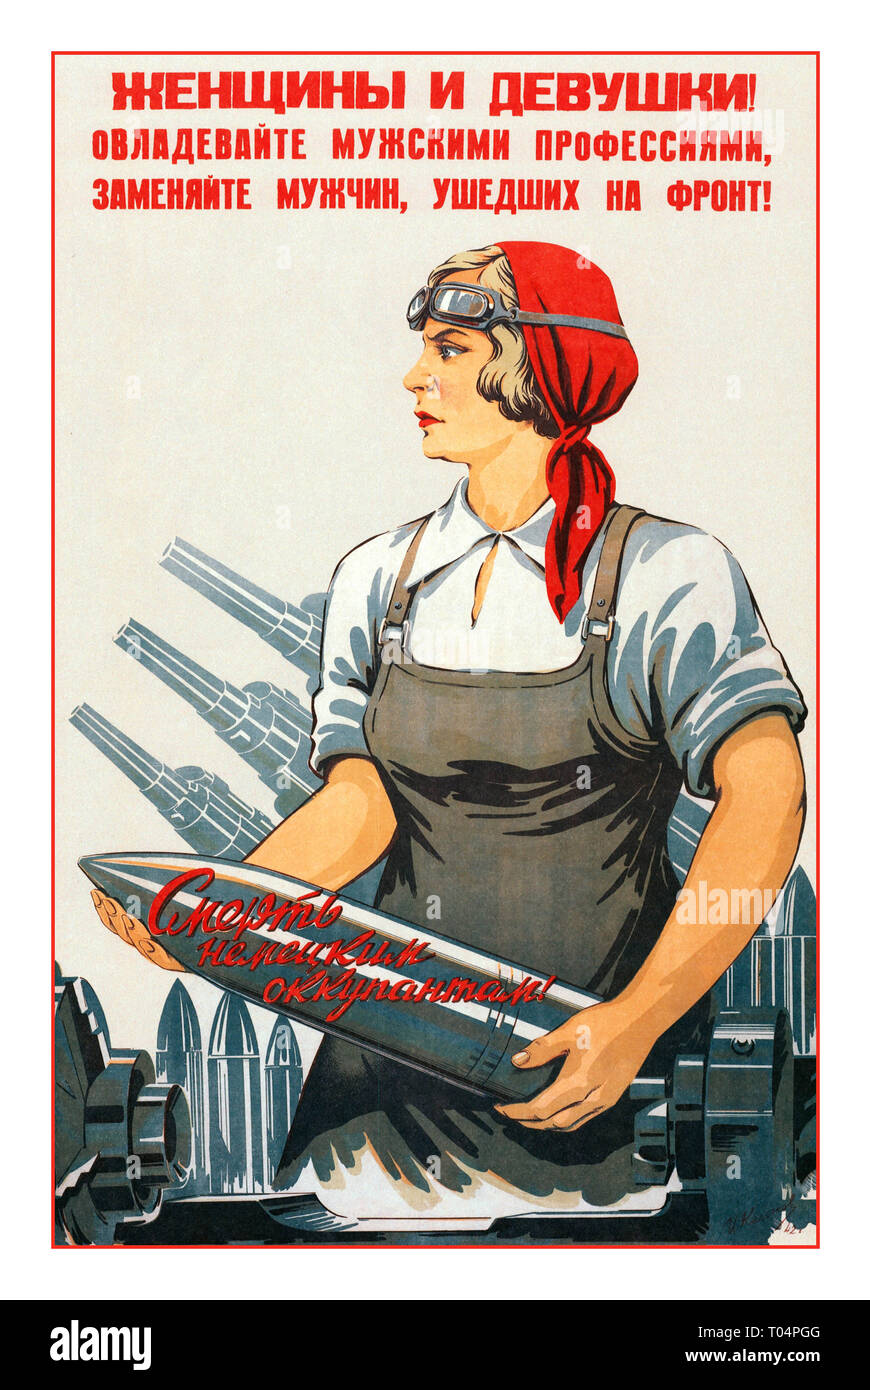 Soviet WW2 Propaganda Poster Recruiting women 'Women and girls!' 'Master the male professions, replace the men who went to the front!' It features a Russian Soviet Woman with sleeves rolled up in a confident pose working in an armaments factory - Stock Image